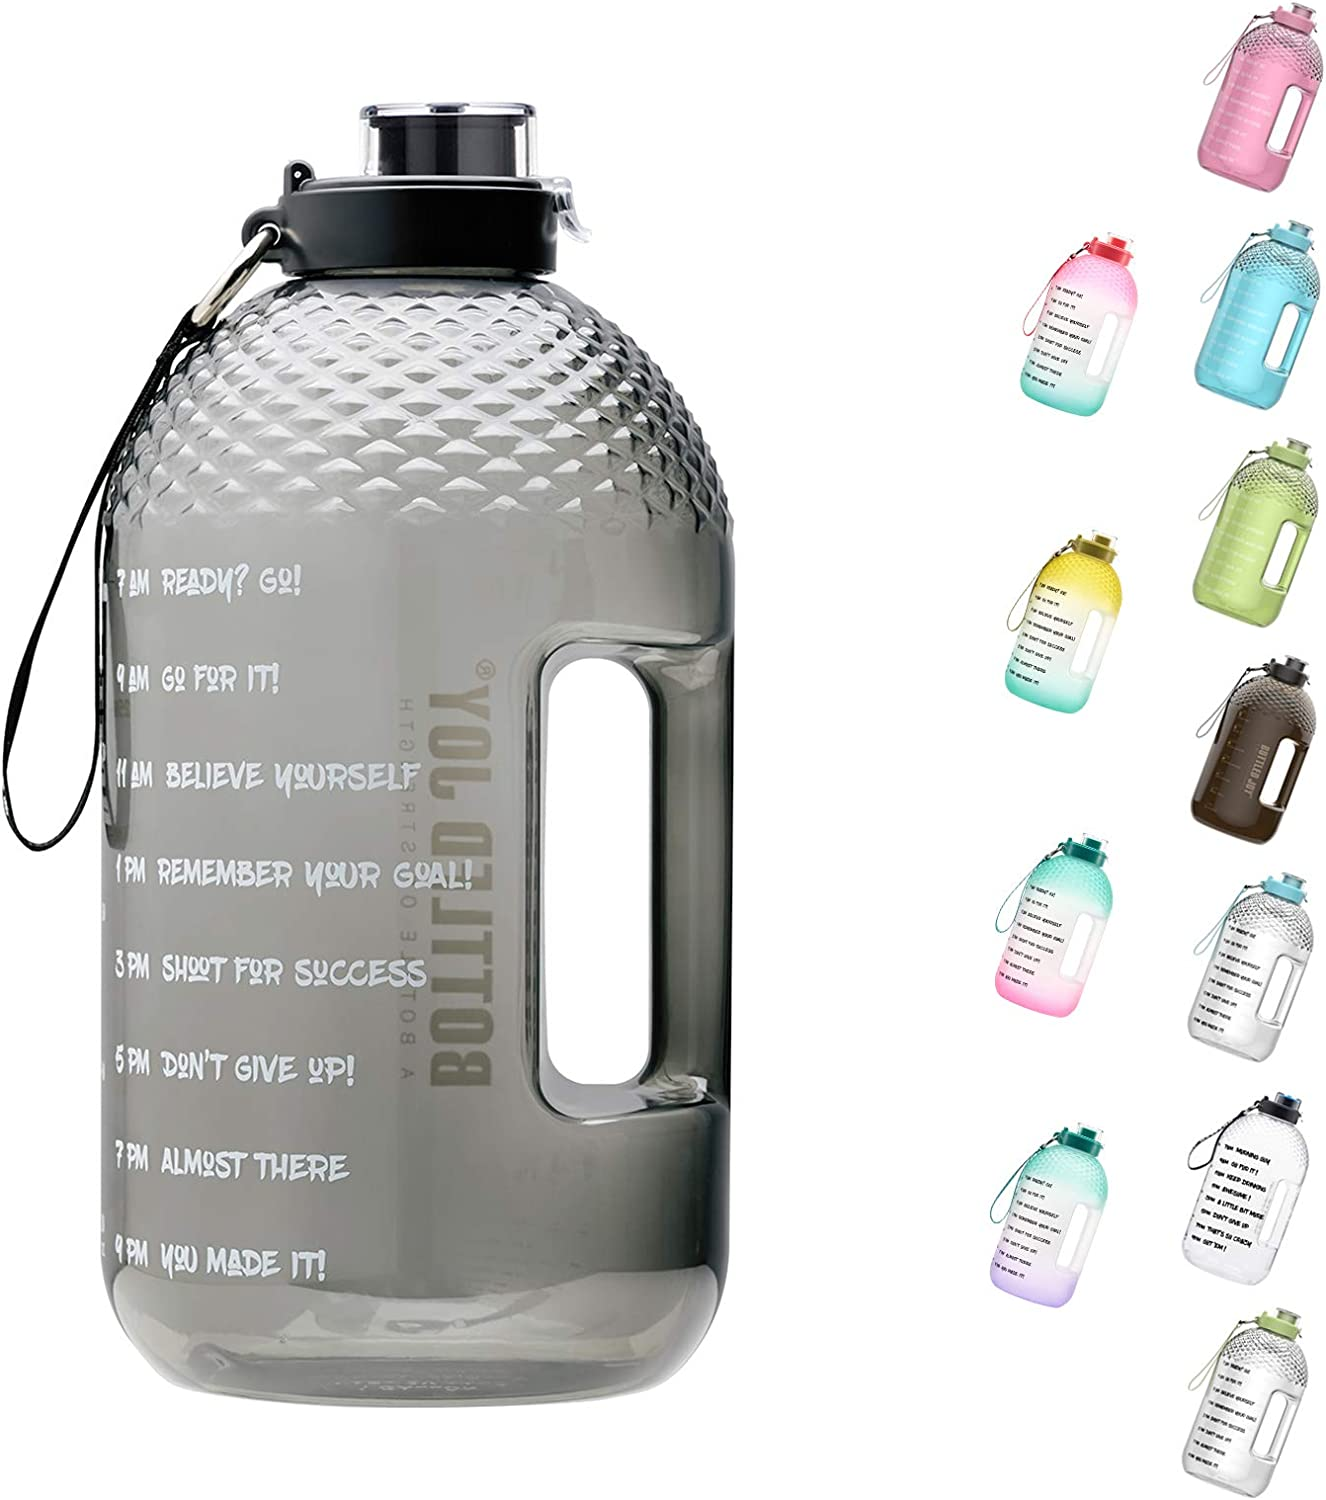 BOTTLED JOY 1 Gallon Water Bottle, BPA-Free Large Water Bottle Hydration with Motivational Time Marker Reminder Leak-Proof Drinking Big Water Jug for Camping Sports Workouts and Outdoor Activity